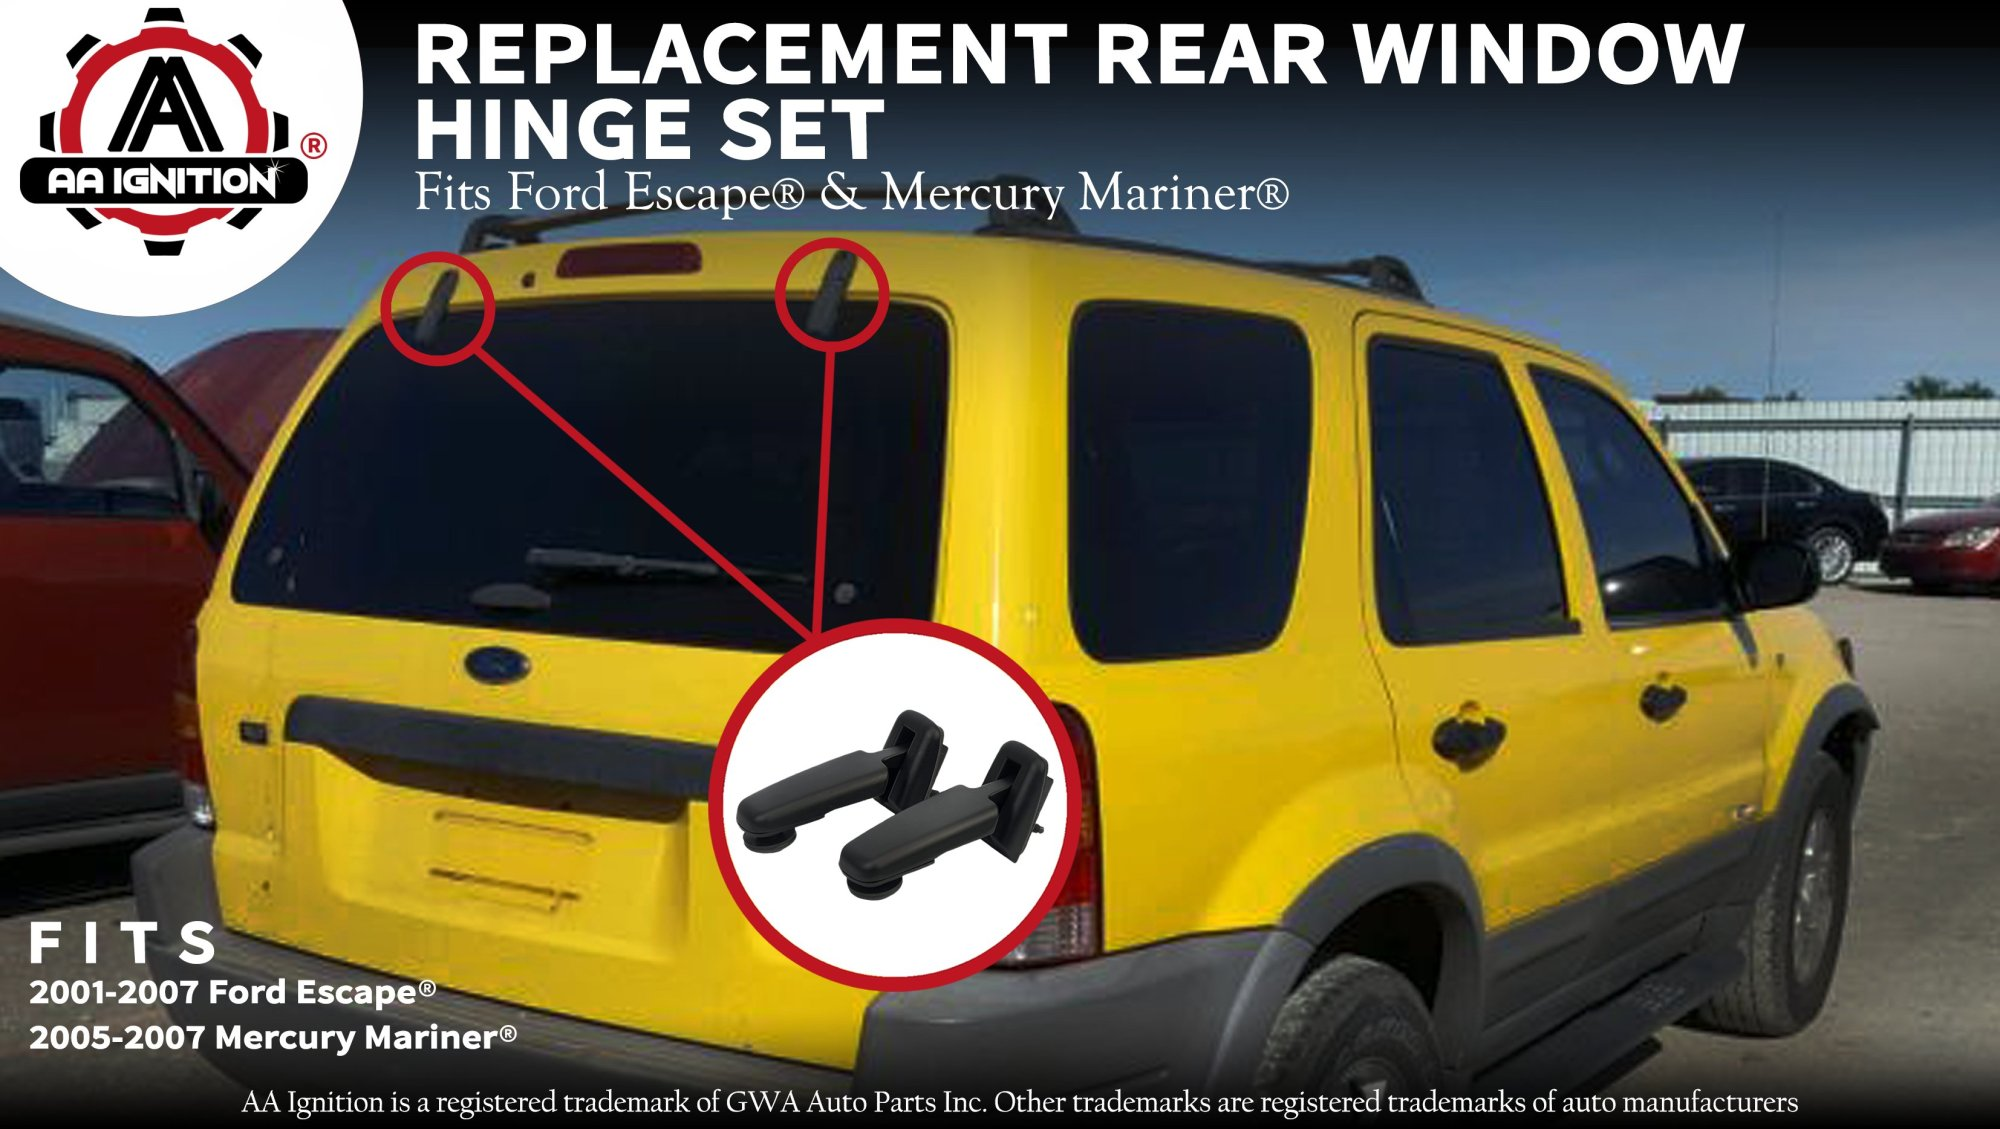 hight resolution of rear window hinge set for ford escape 2001 2002 2003 2004 2005 2006 2007 mercury mariner 2005 2007 replaces yl8z78420a68ba yl8z78420a69ba